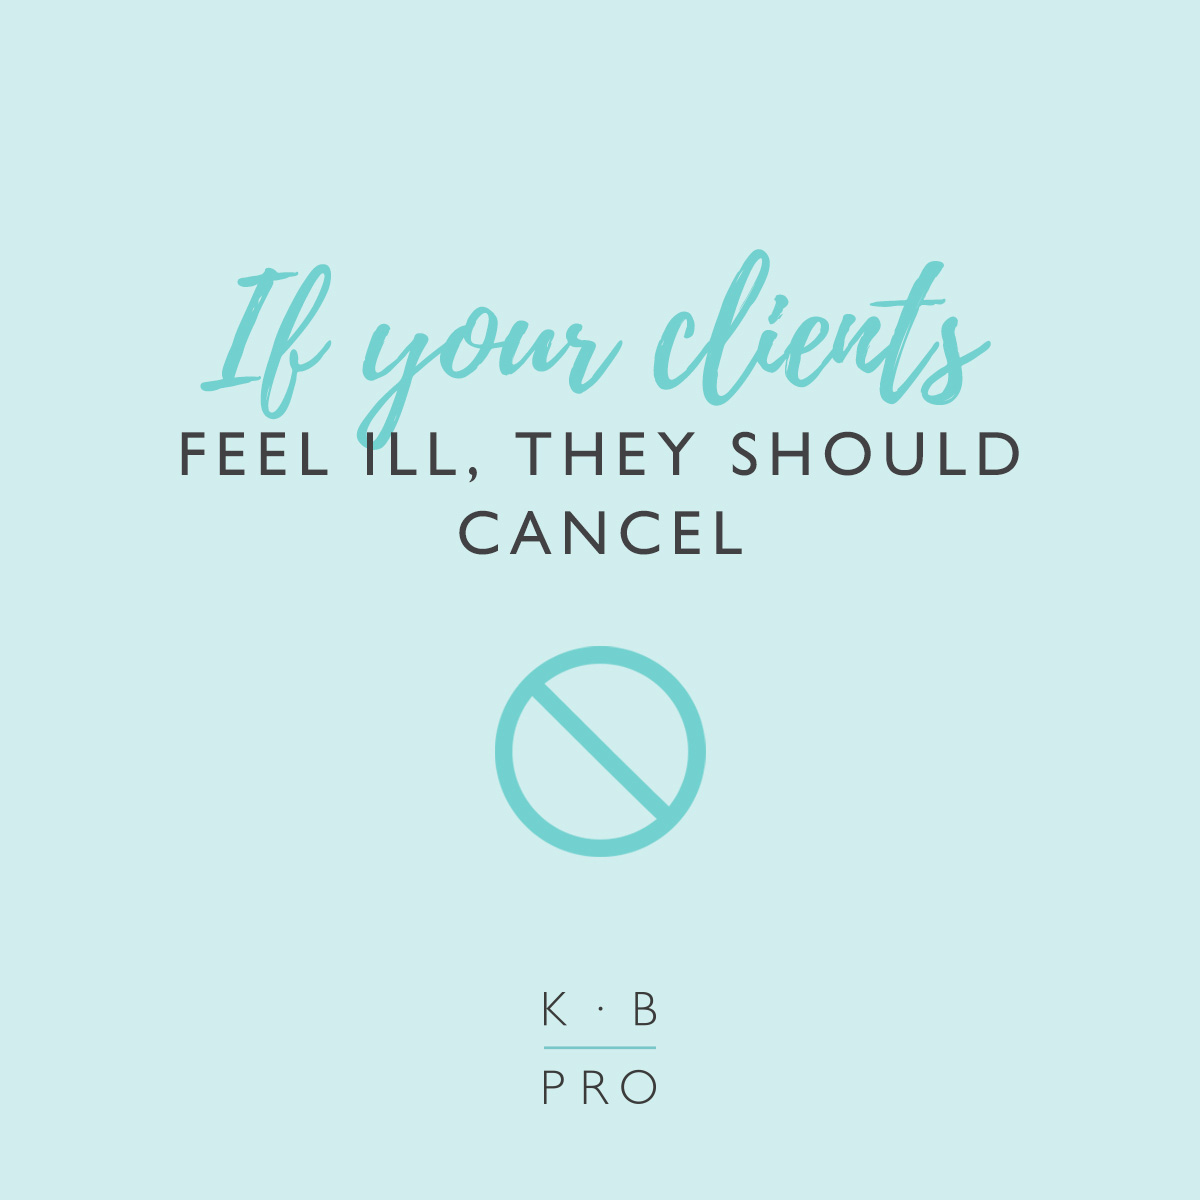 If your clients feel ill, they should cancel